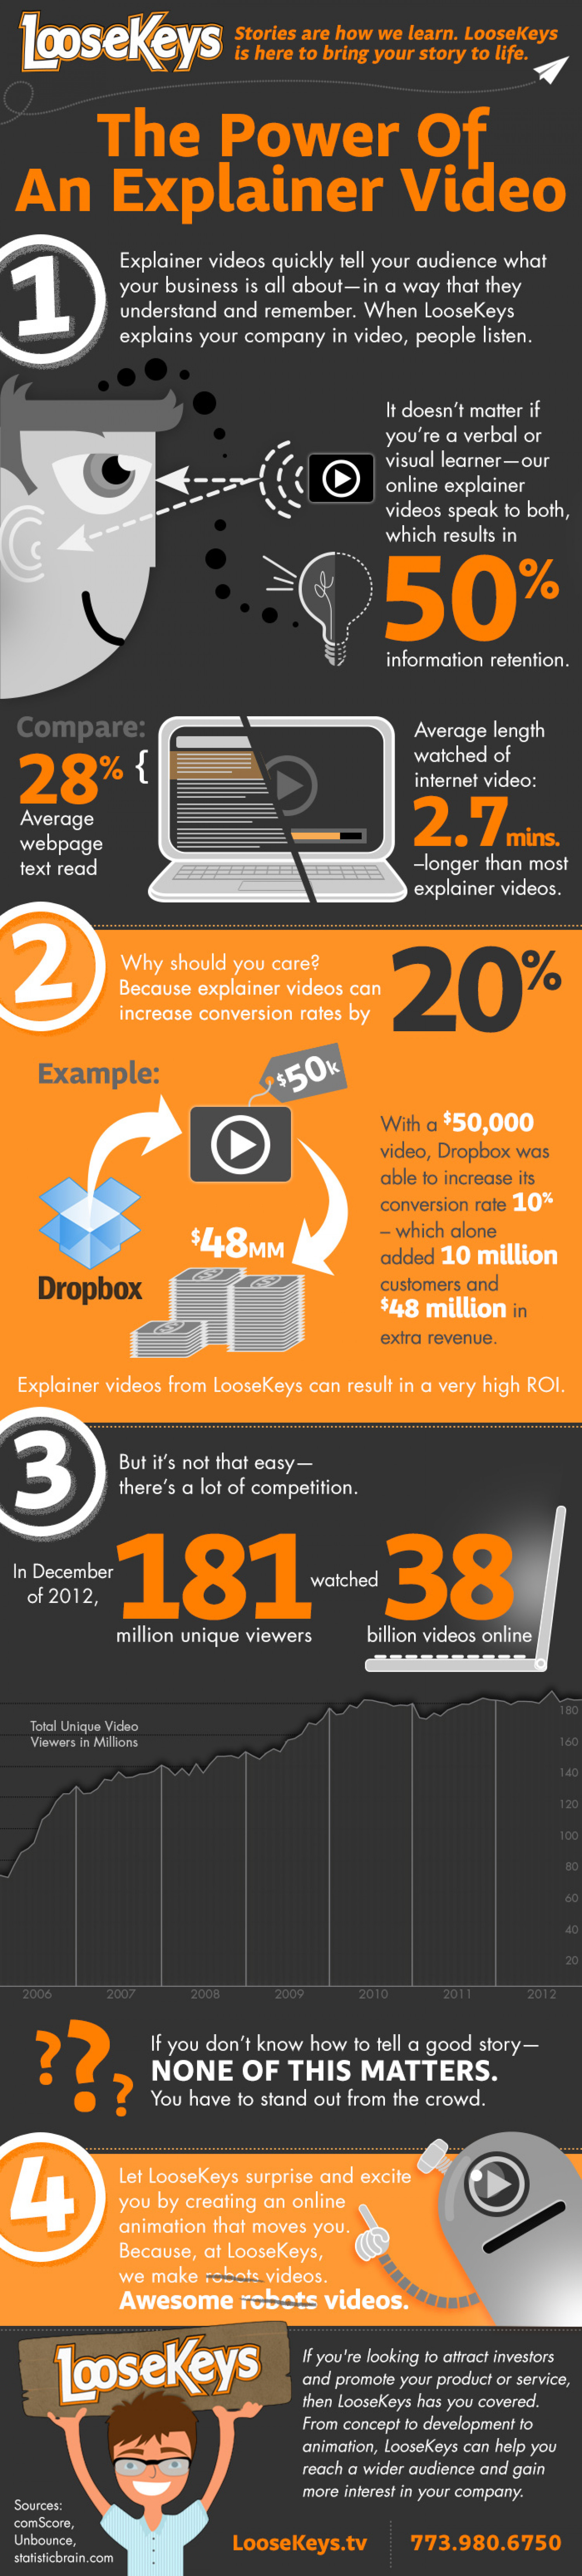 The Power Of An Explainer Video Infographic